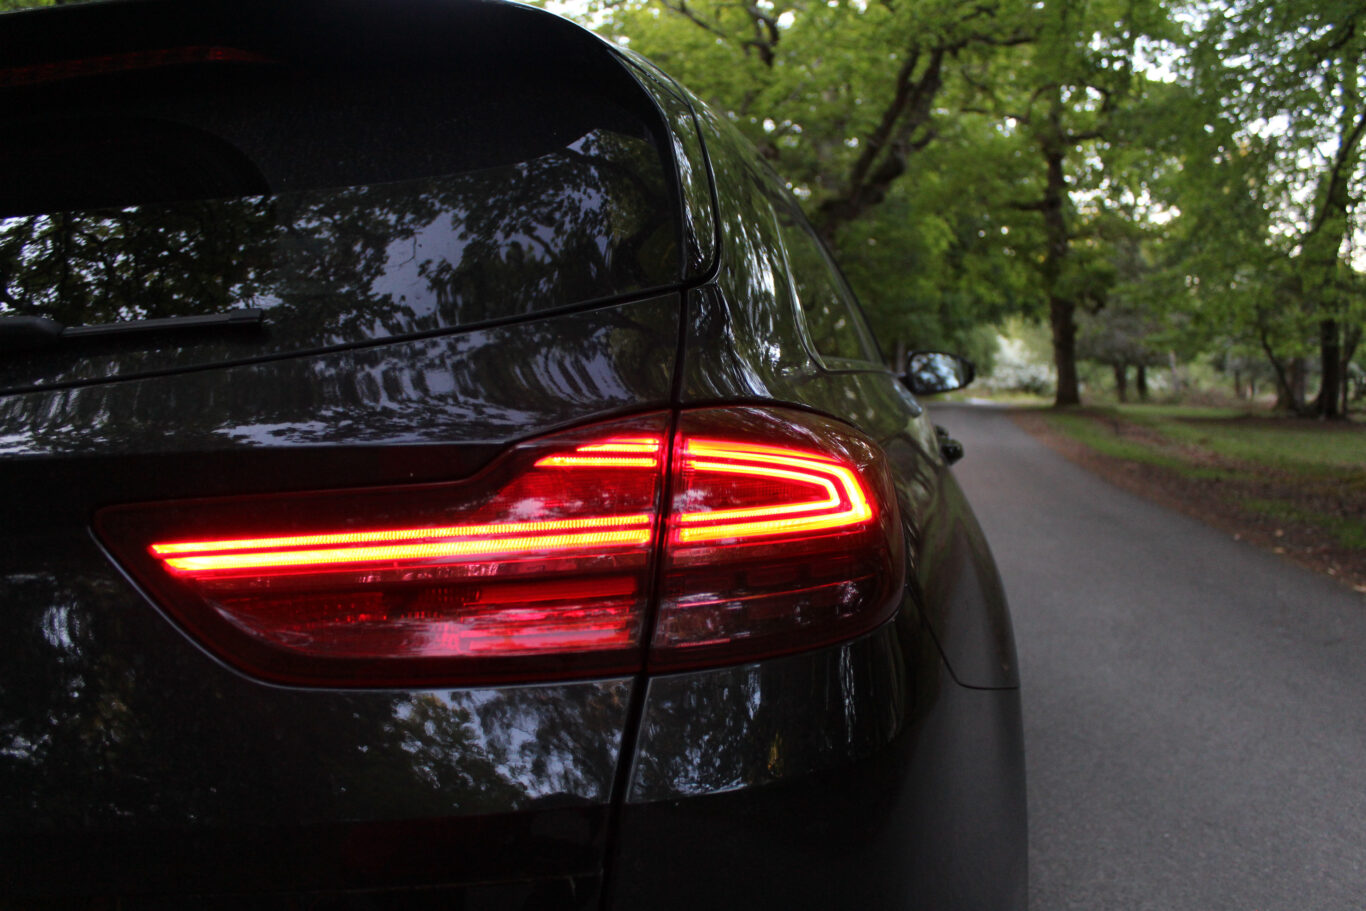 The rear lights are a standout design feature